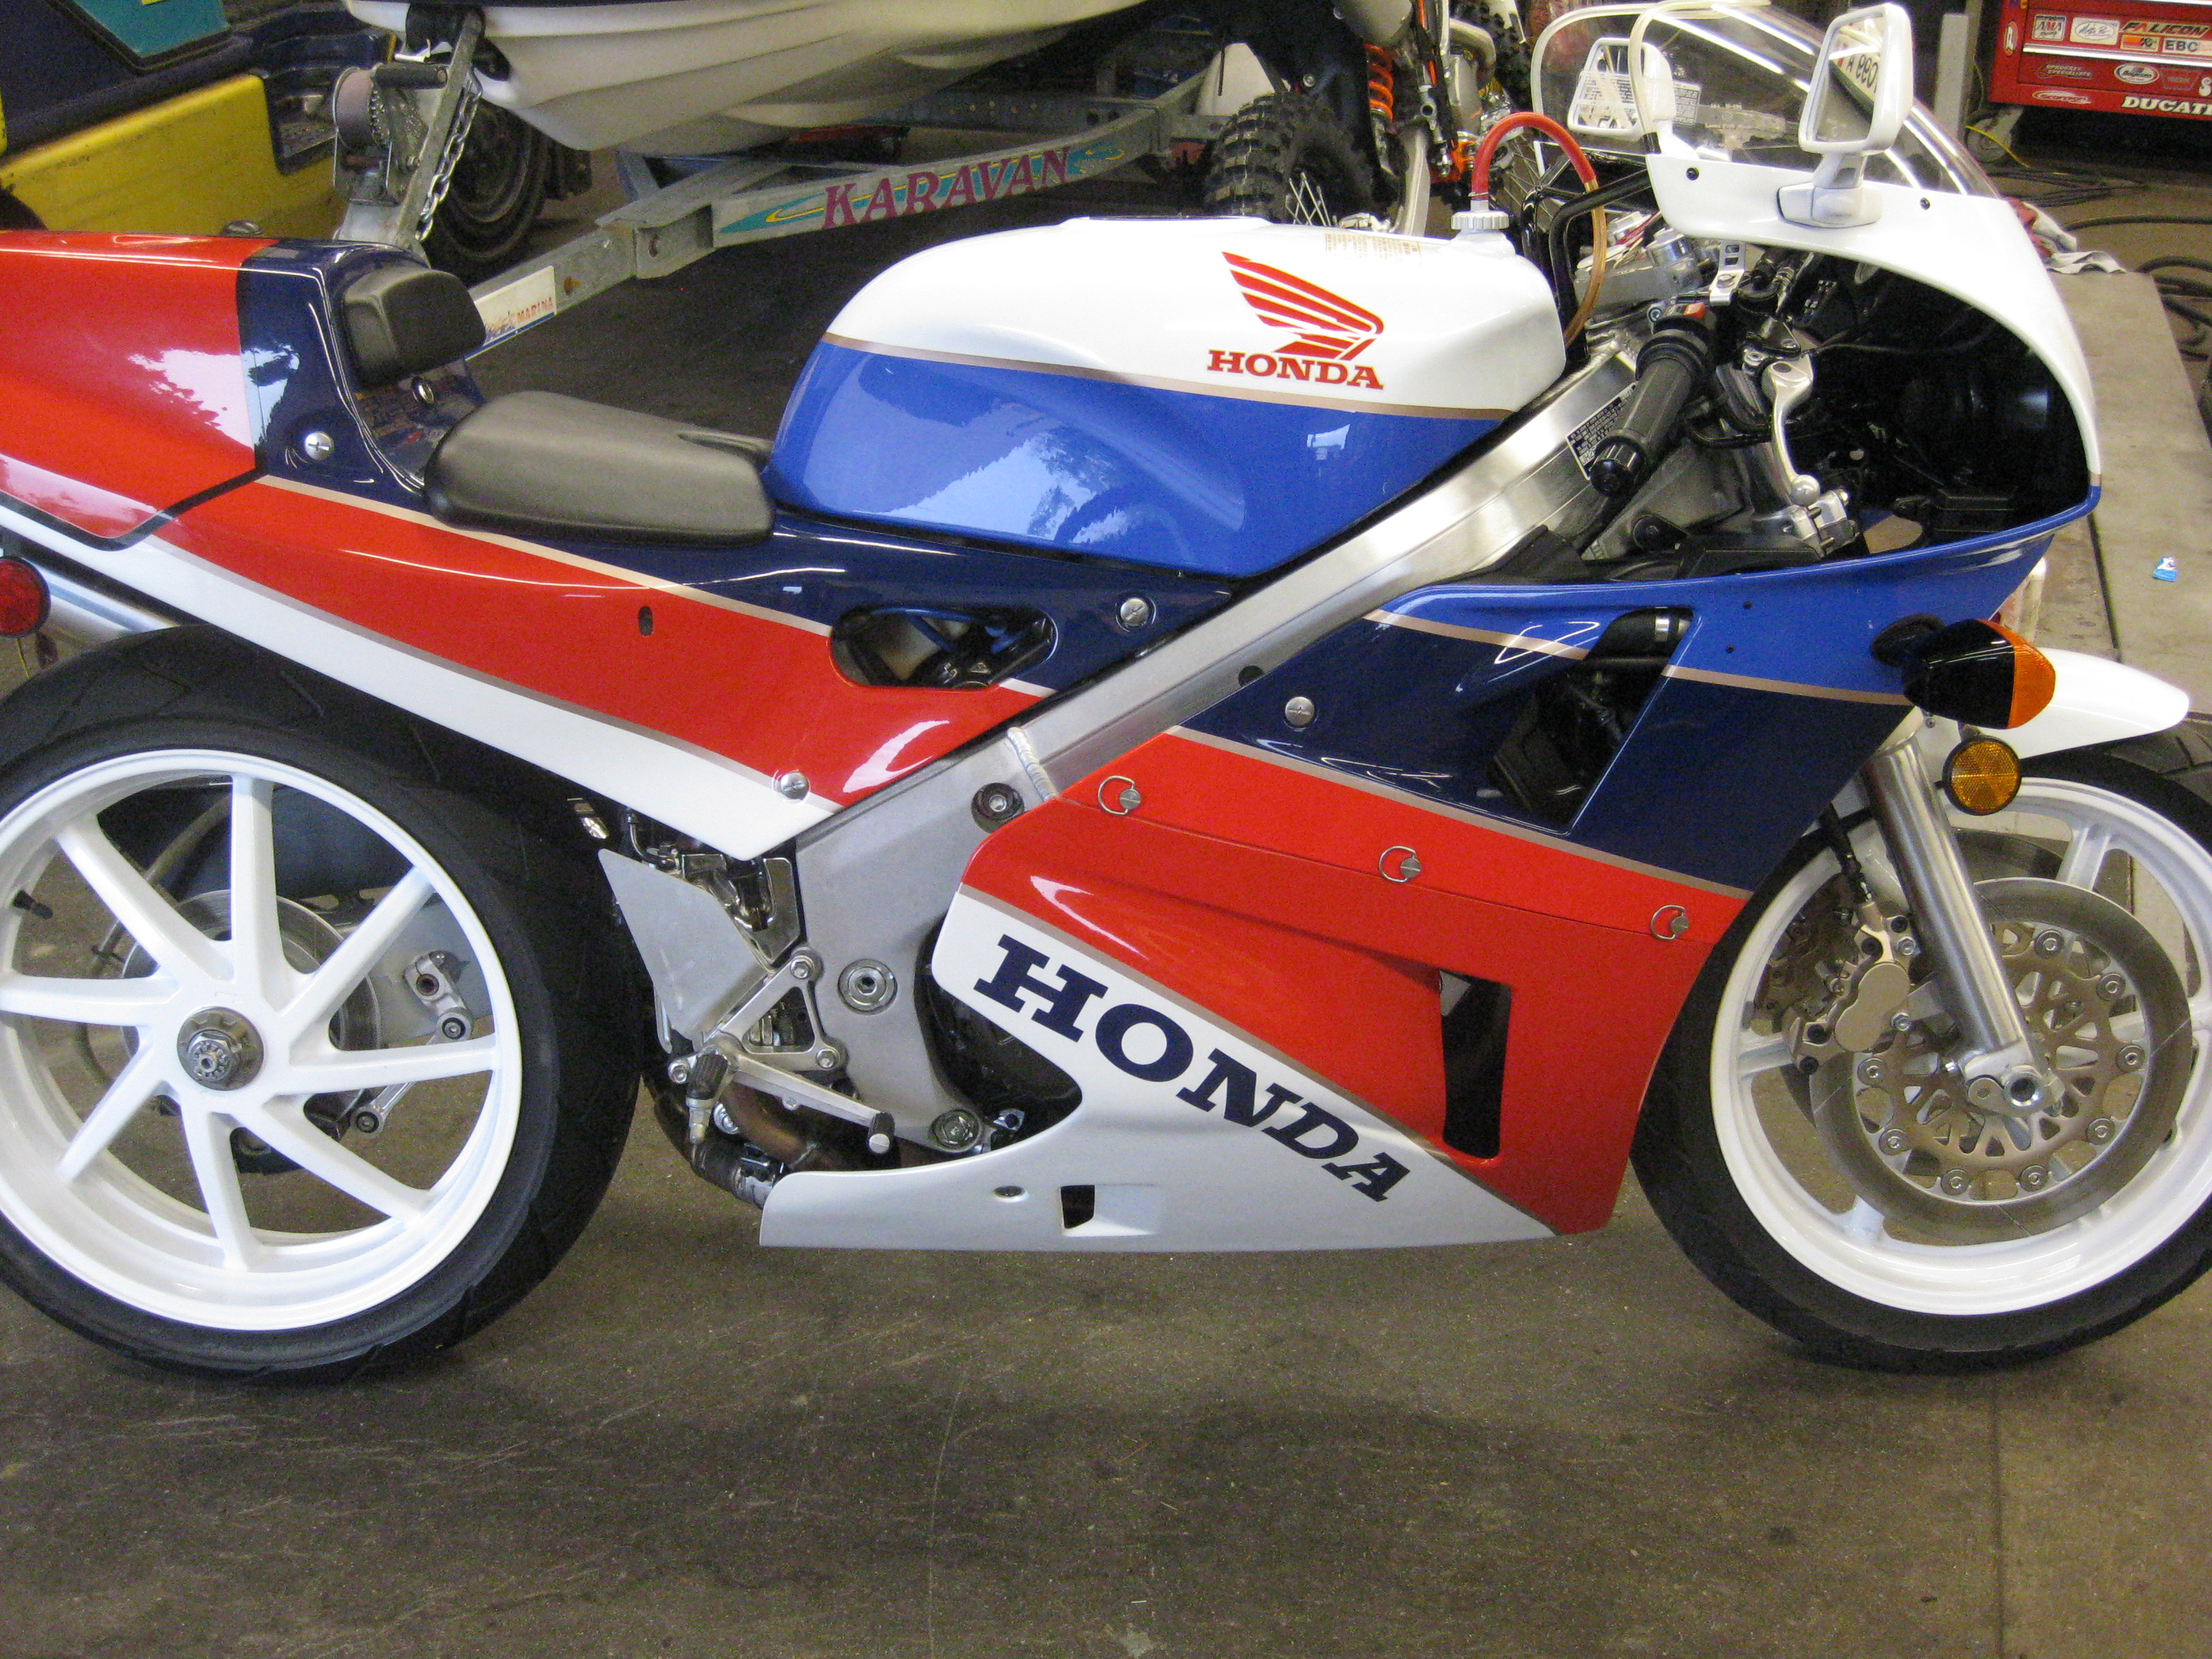 rc 30 archives page 2 of 2 rare sportbikes for sale. Black Bedroom Furniture Sets. Home Design Ideas